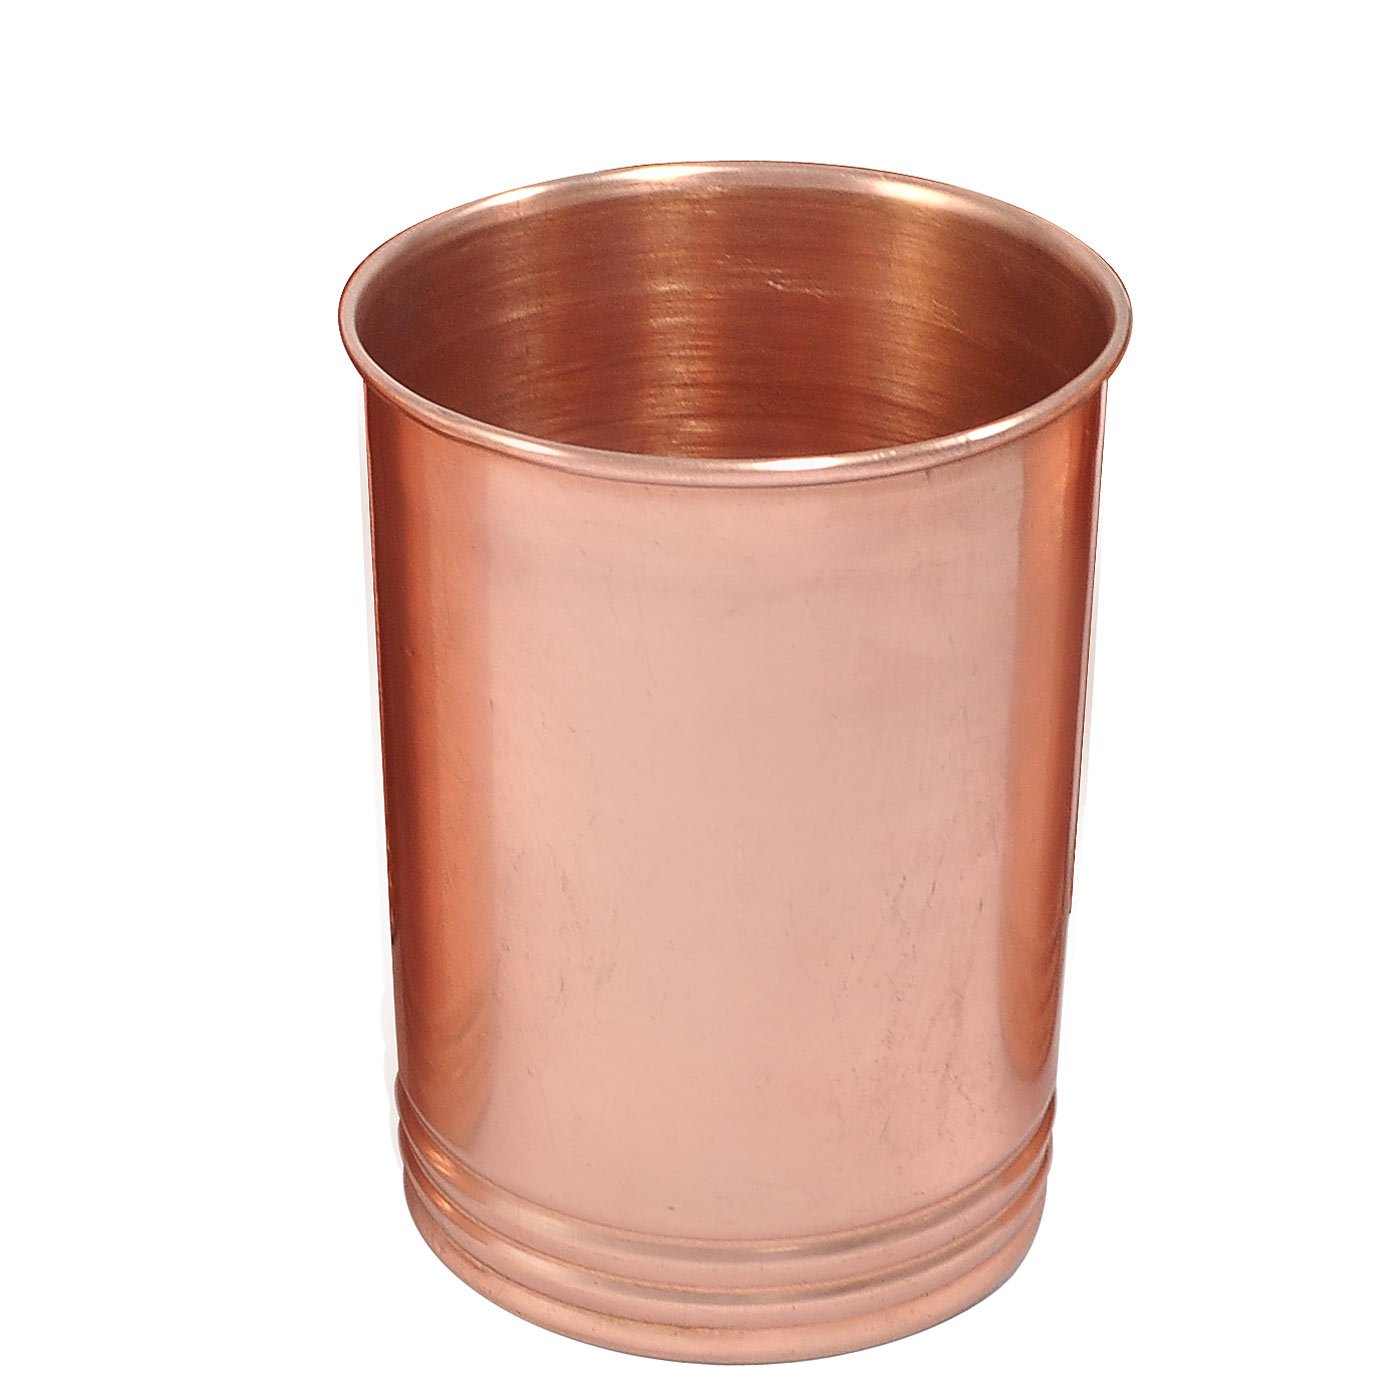 Dungri India Handmade pure Copper glass cup for water - Traveller's Copper Mug for Ayurveda Benefits